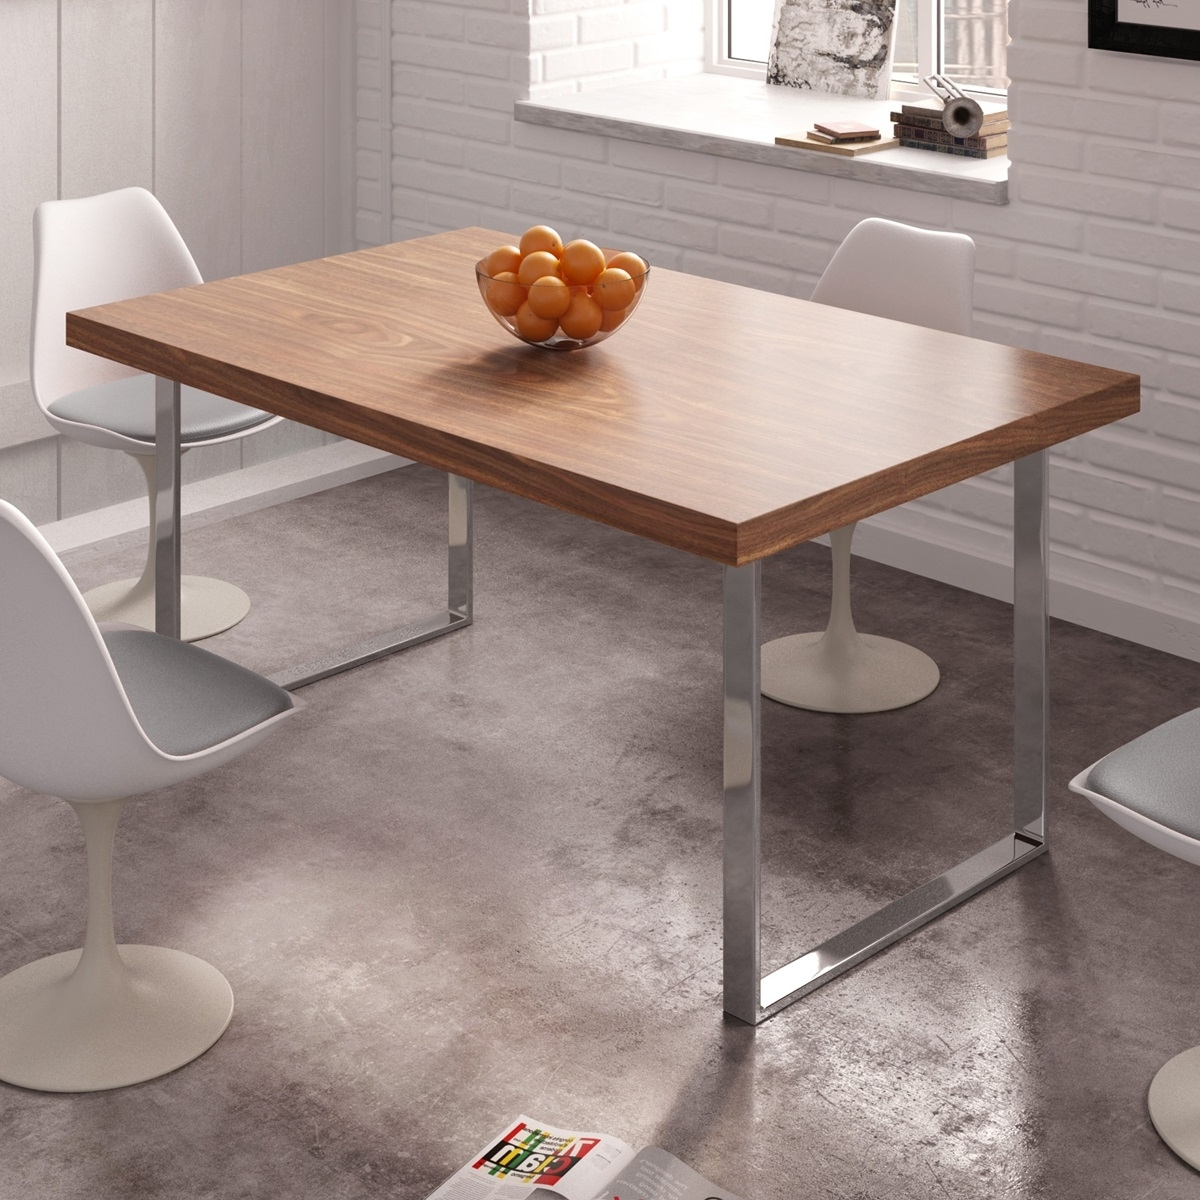 Eco-Natura Roma Dining Table regarding Well known Roma Dining Tables